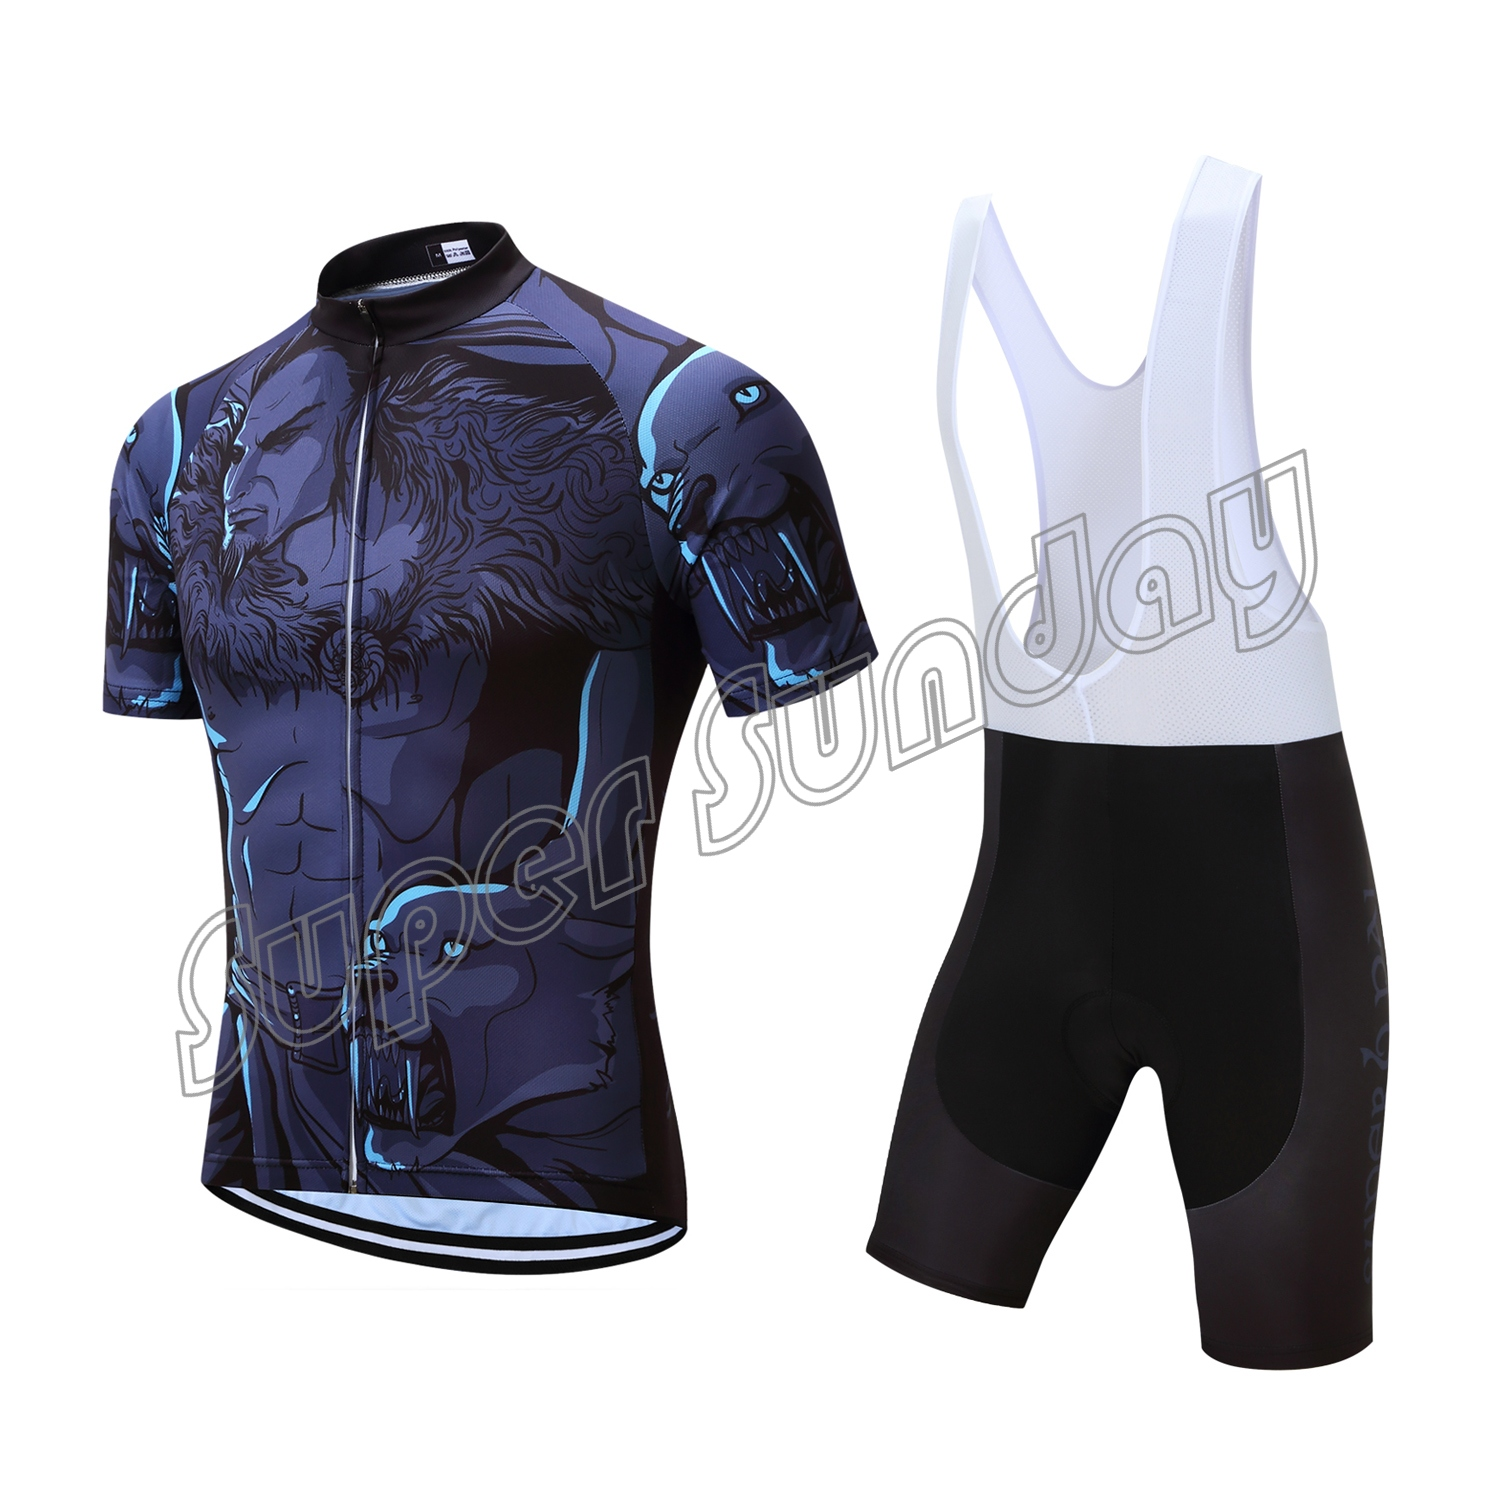 Quality Pro Team Cycling Jerseys Men's cycling Sportwear Short Sleeve Racing Jersey Outdoor Biking Dress Free Shipping SPNDT1 176 top quality hot cycling jerseys red lotus summer cycling jersey 2017s anti uv female adequate quality sleeve cycling clothin